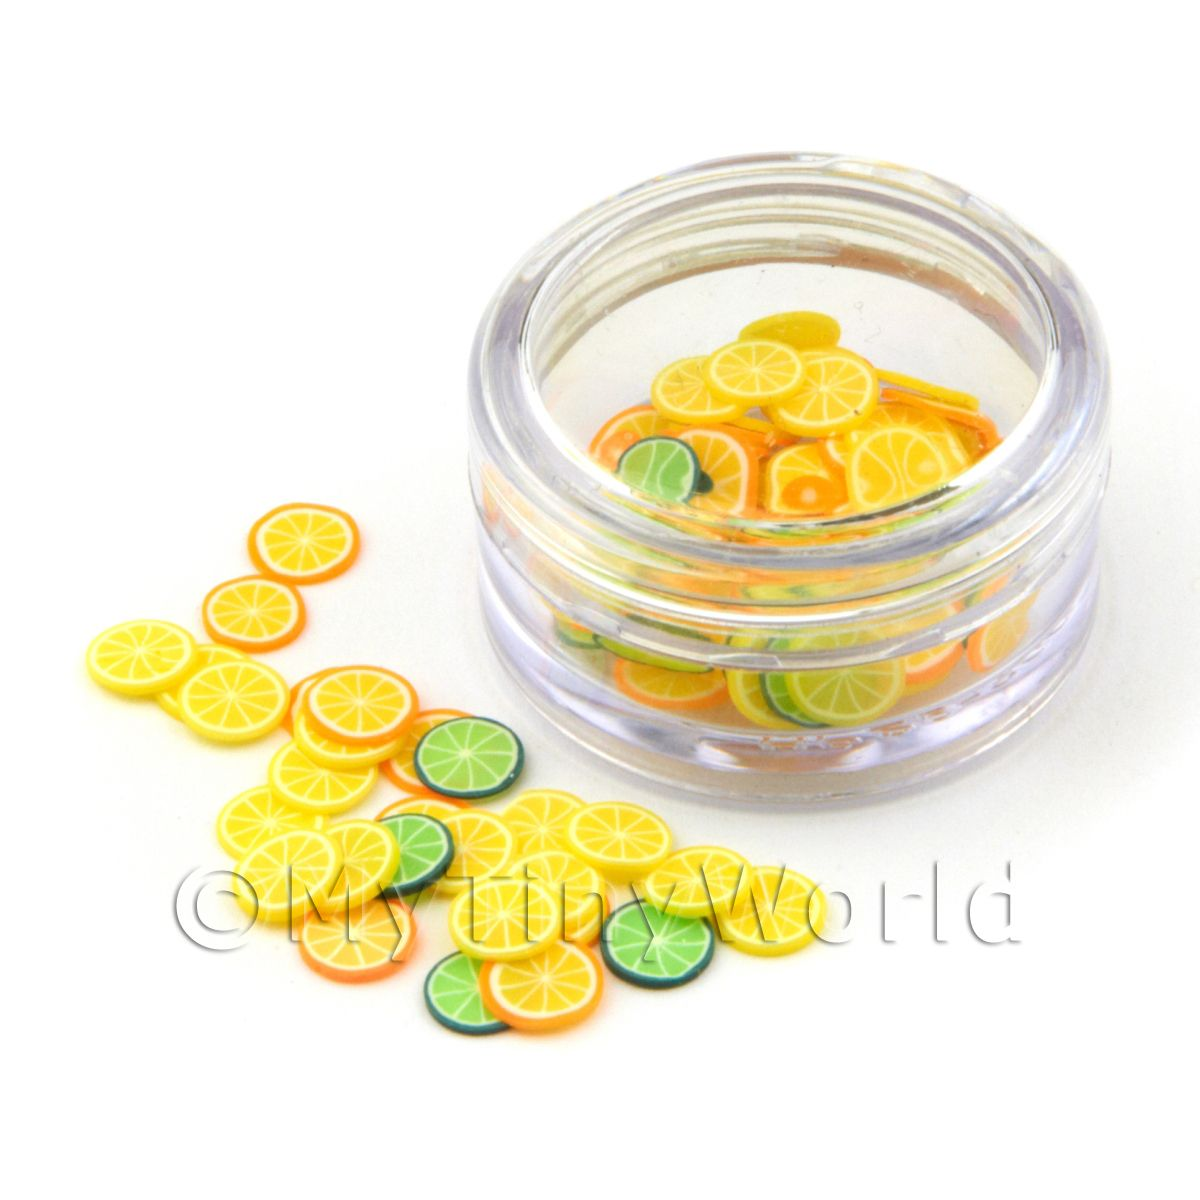 Citrus Themed Nail Art Pot Containing 120 Mixed Slices